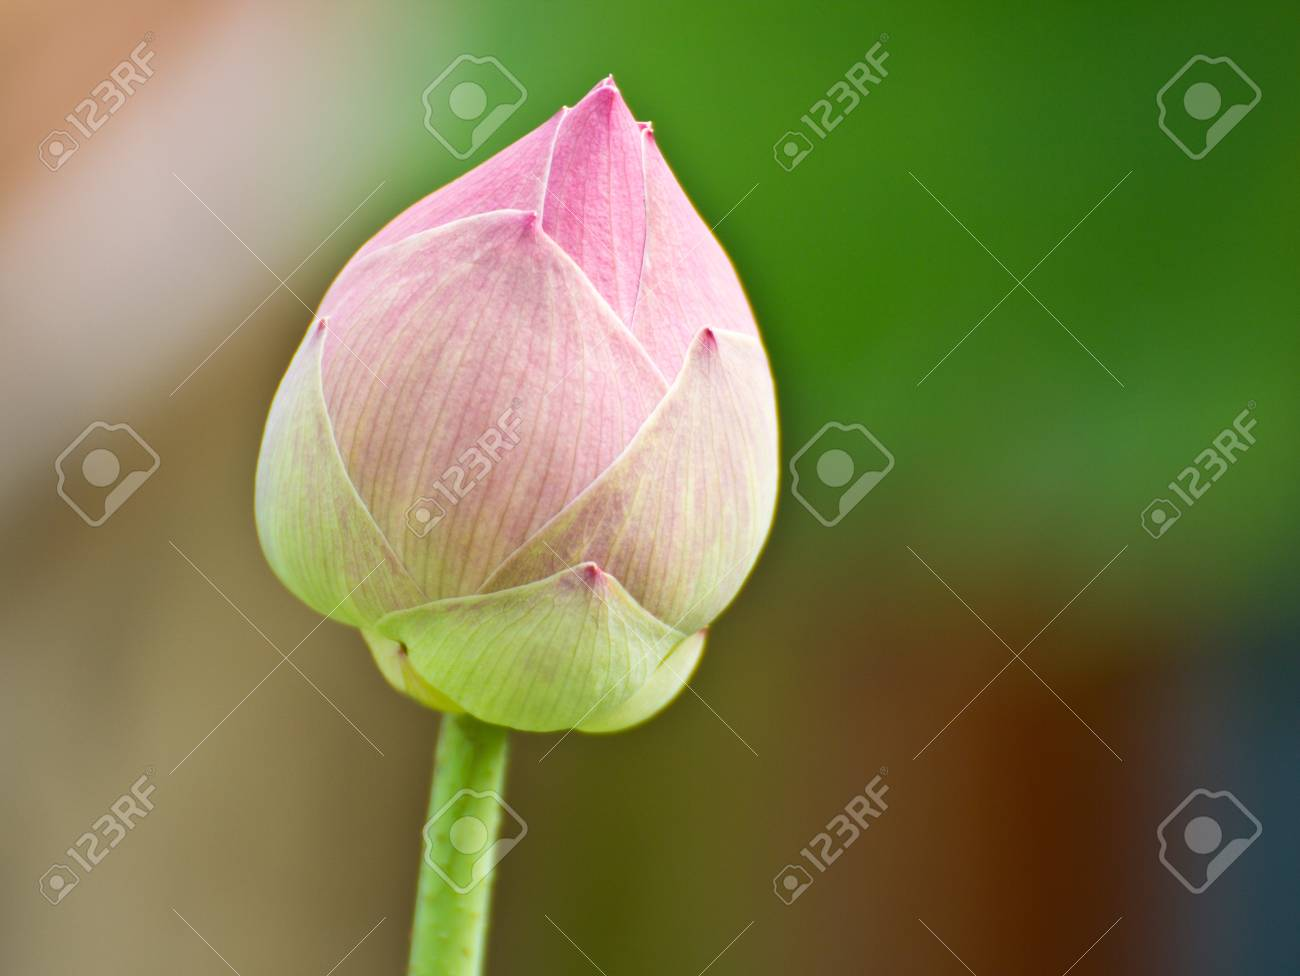 A pink lotus flower growing upright in thailand stock photo picture a pink lotus flower growing upright in thailand stock photo 15660017 izmirmasajfo